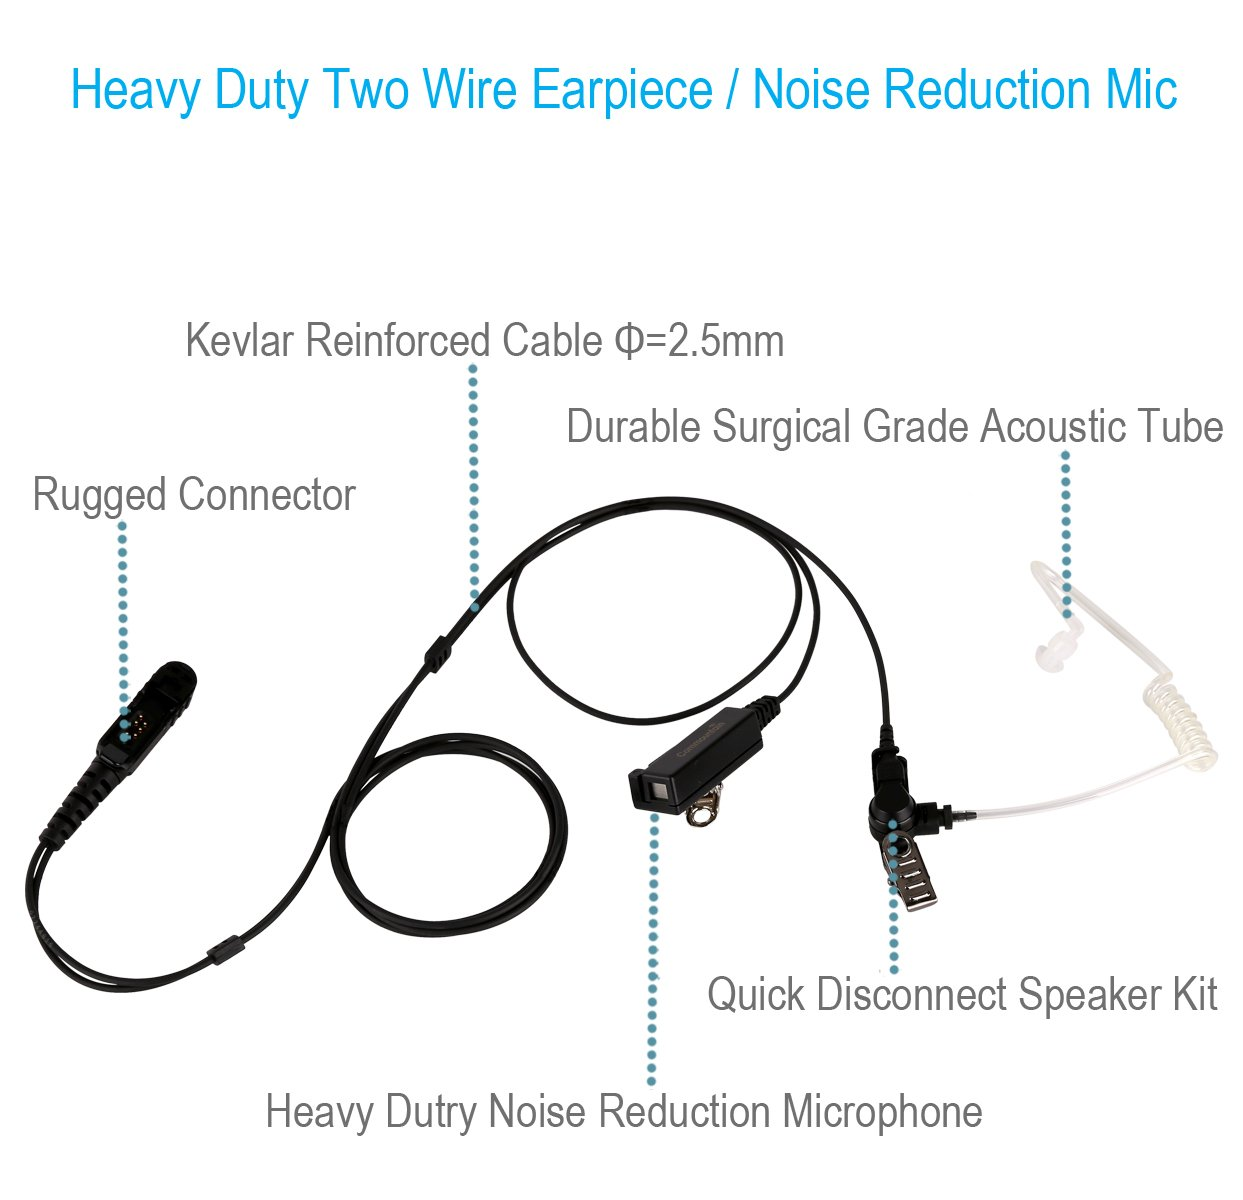 5 Pack Two Wire Earpiece with Kevlar Reinforced Cable for Motorola Radio XPR3000 XPR3300 XPR3500 XPR3300e XPR3500e XPR 3300 3500 3300e 3500e, Acoustic Tube, Noise Reduction Mic, Surveillance Headset by Commountain (Image #2)